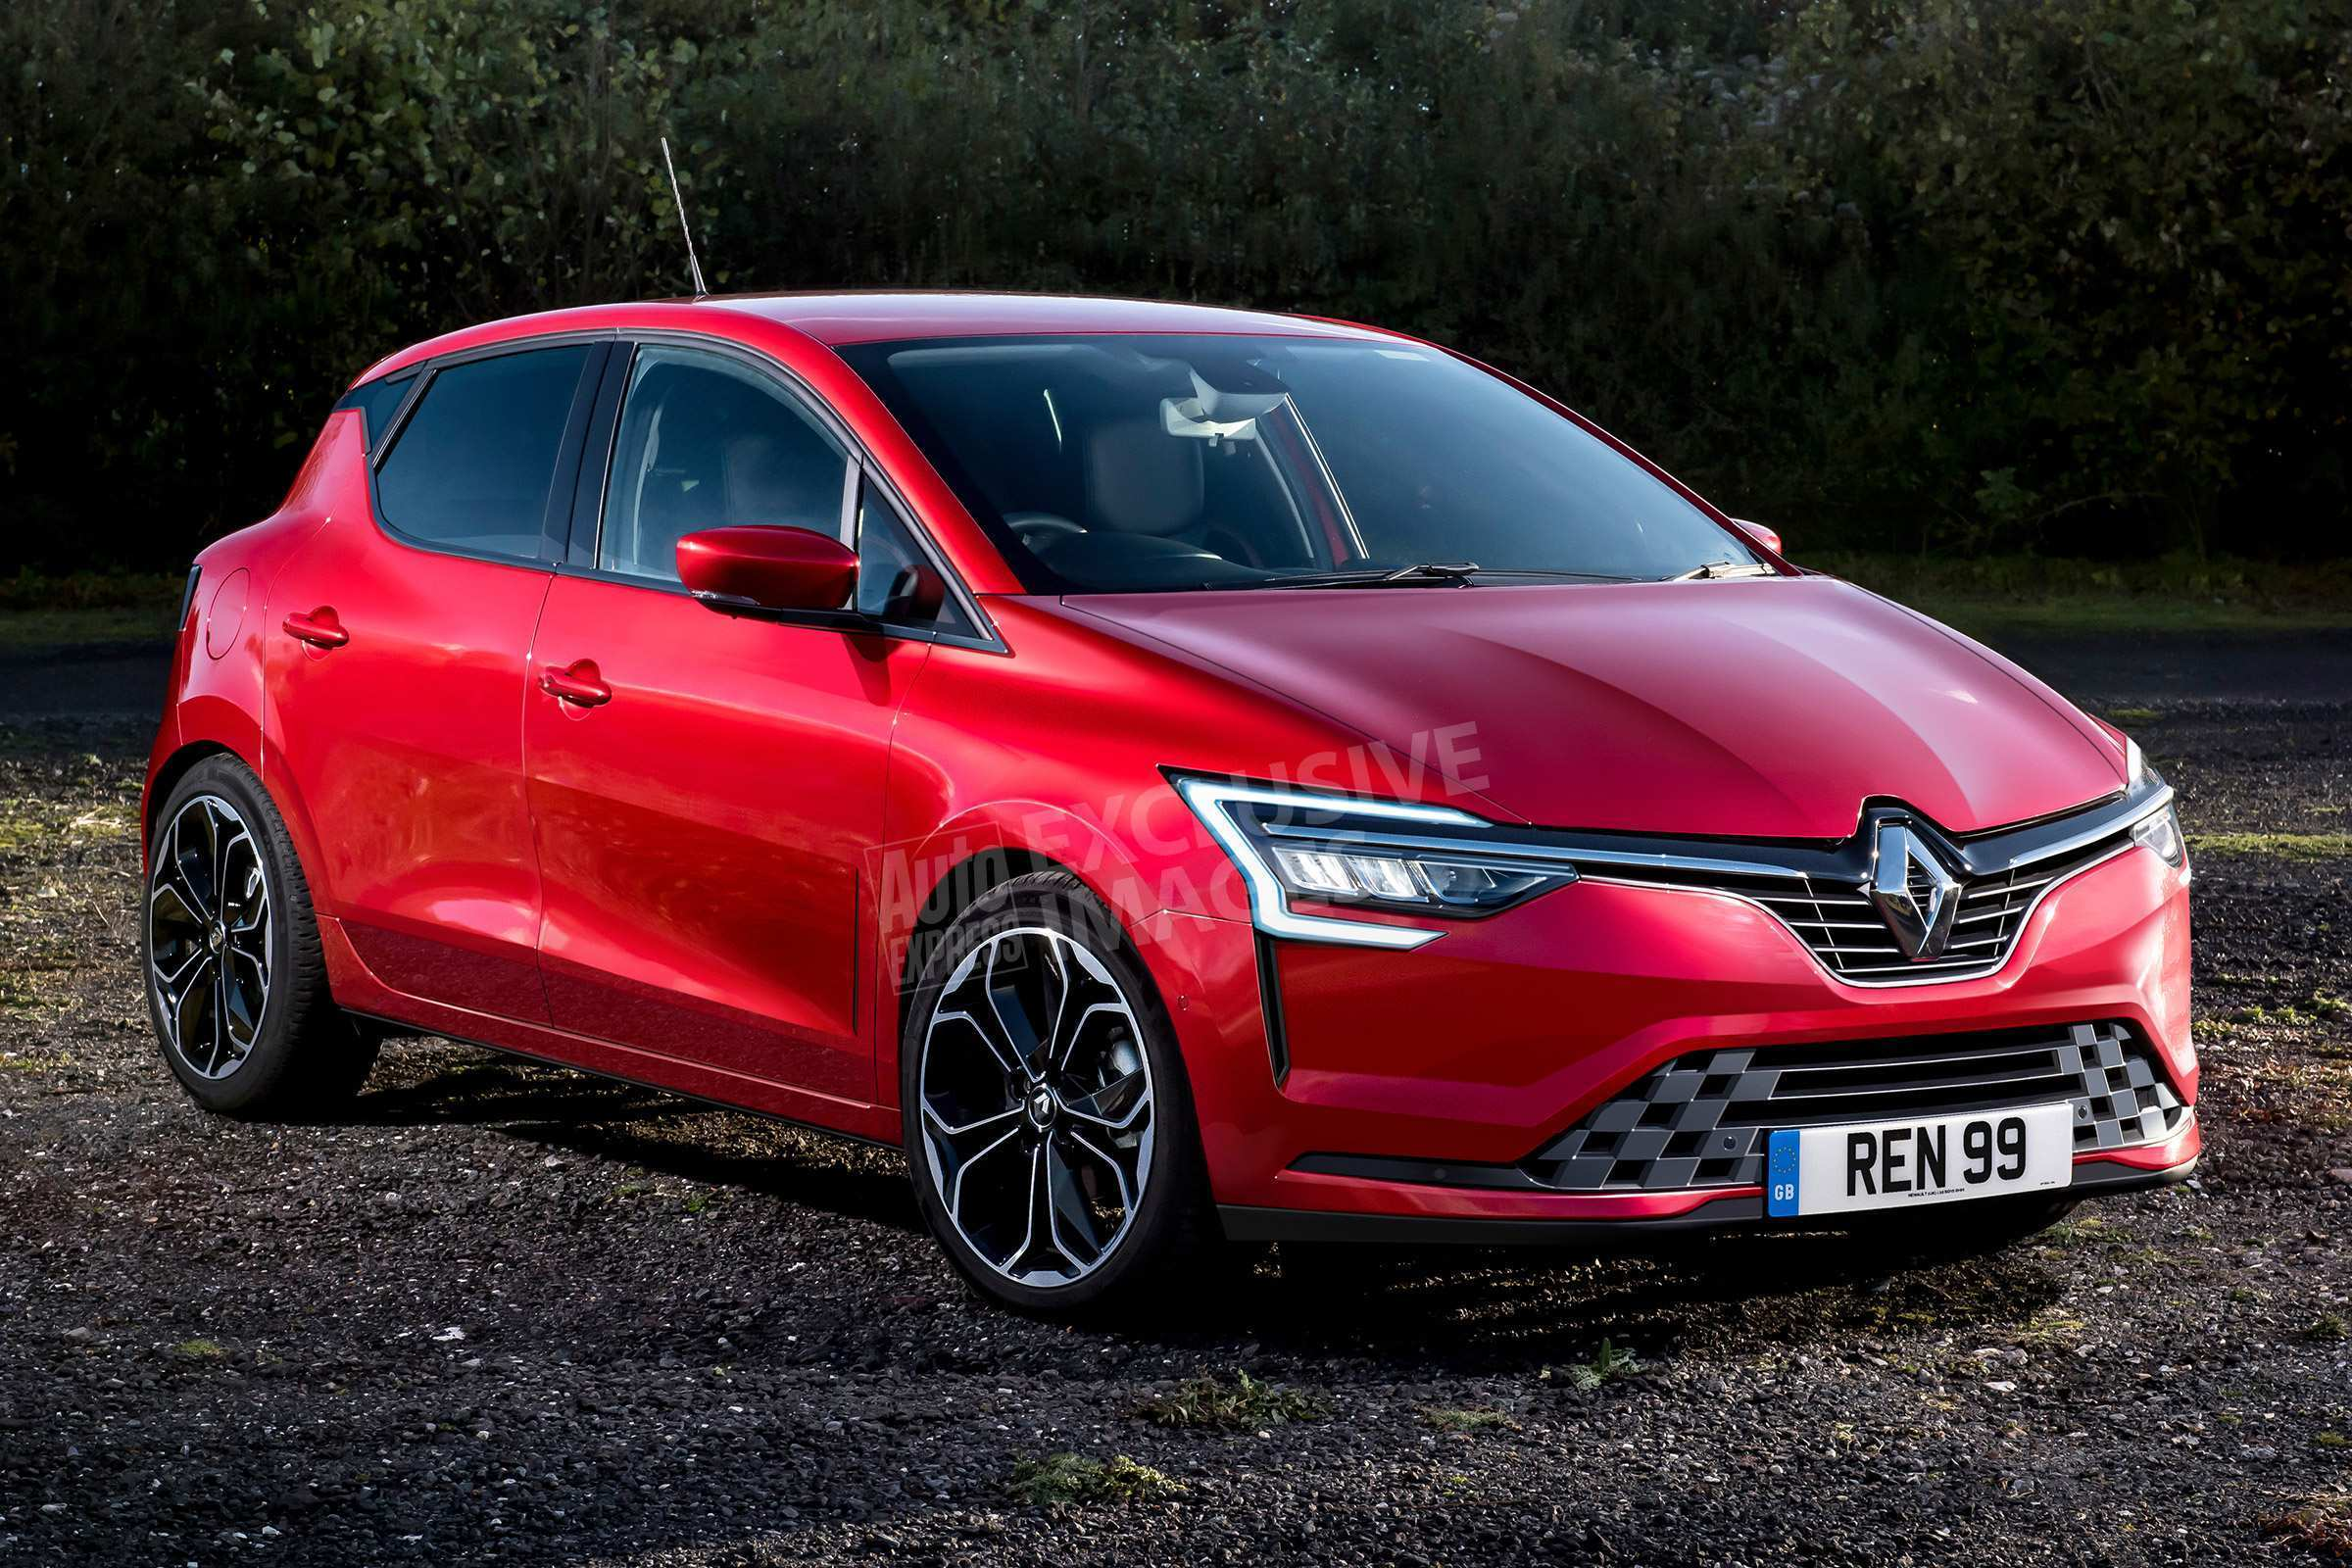 73 New Renault 2019 Models Interior with Renault 2019 Models